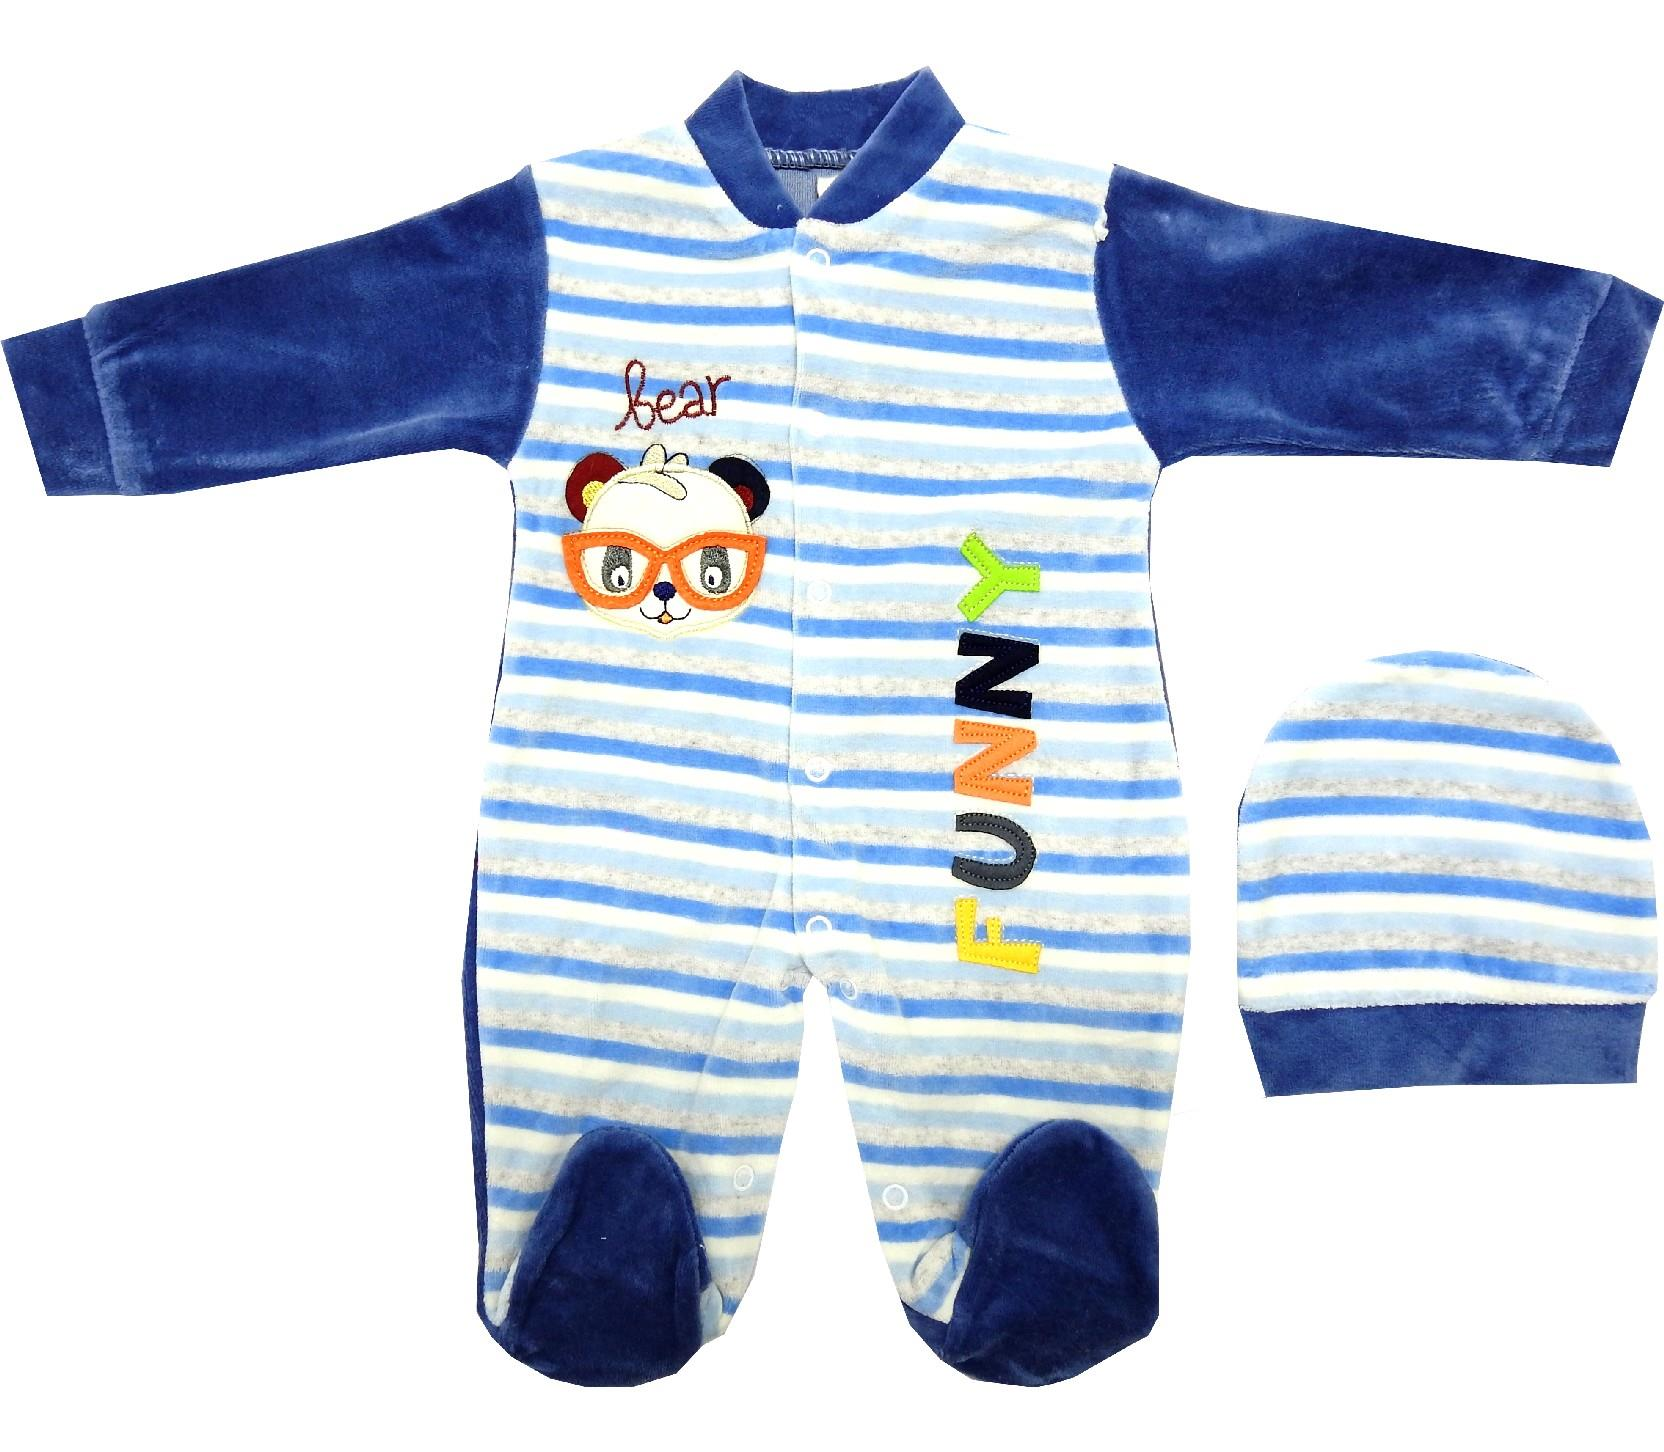 FUNNY PRINTED DESIGN STRIPED DESIGN BODYSUIT & BEANIE DOUBLE SET FOR BOY (3-6-9 MONTH)